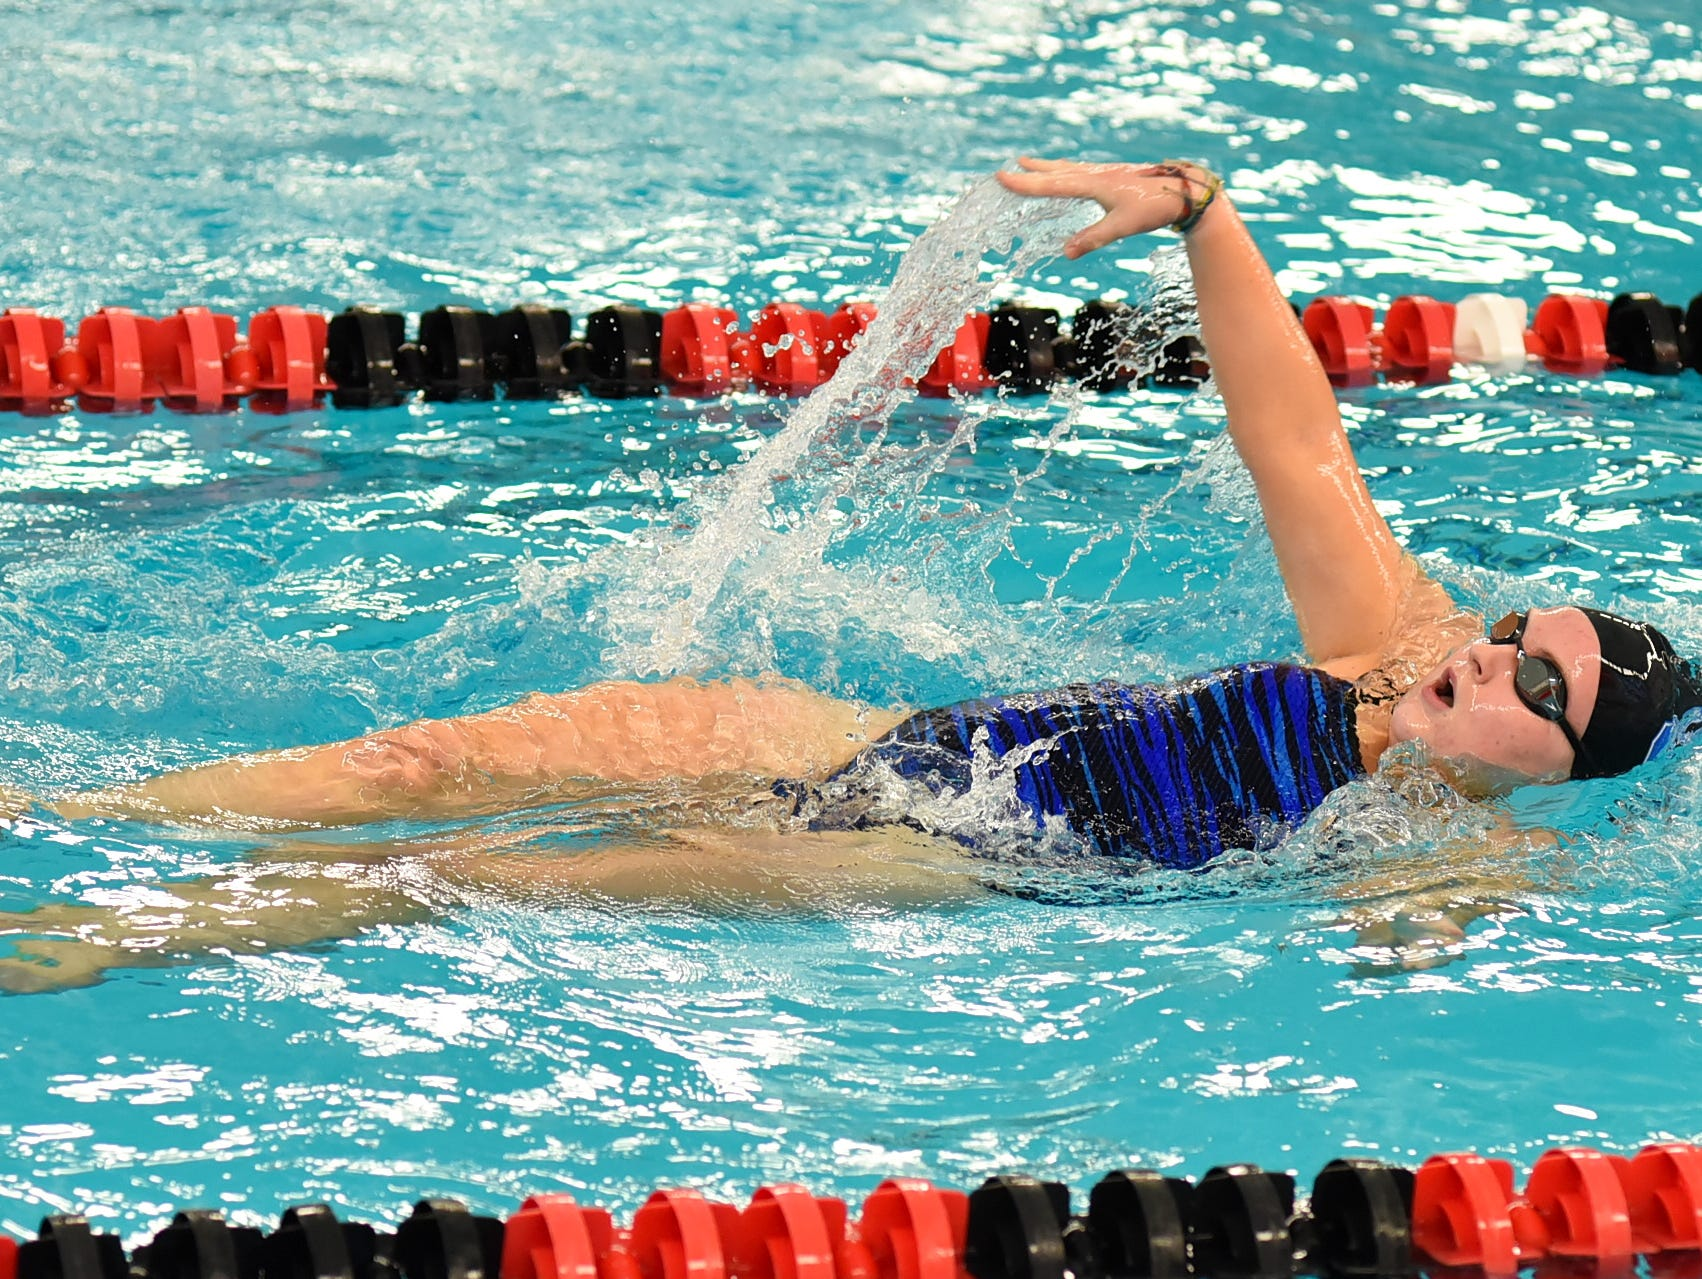 Summit's Grace Anderson drives home in the girls 100 backstroke at the Southwest Ohio Swimming and Diving Classic, January 19, 2019.